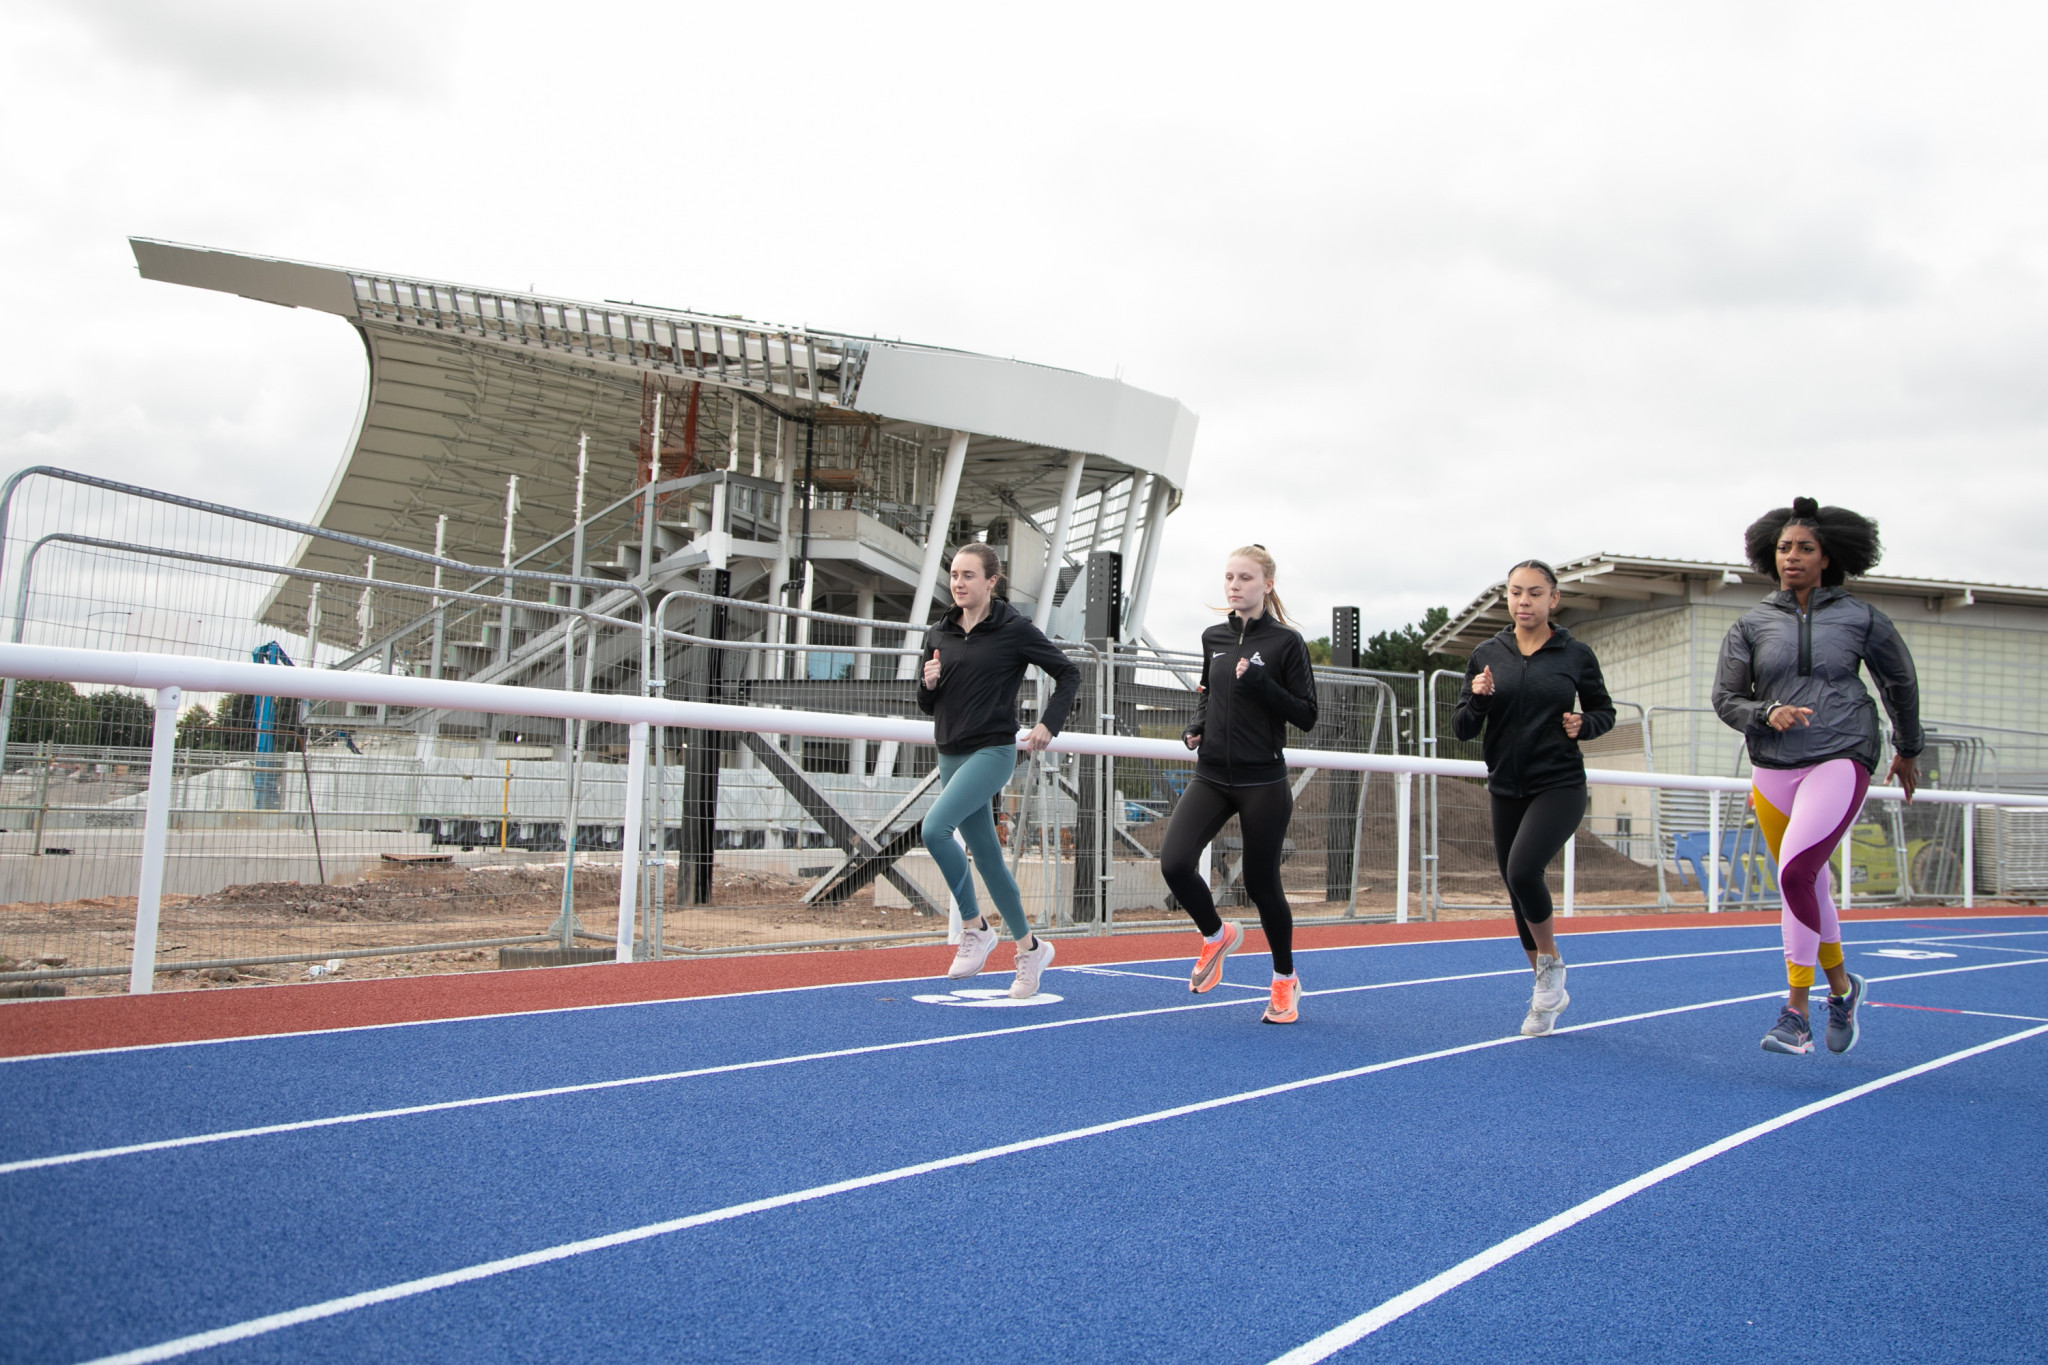 Athletes including Laura Muir, left, and Kadeena Cox, right, run on the athletics track at the Alexander Stadium, which is currently undergoing renovation ©Birmingham 2022